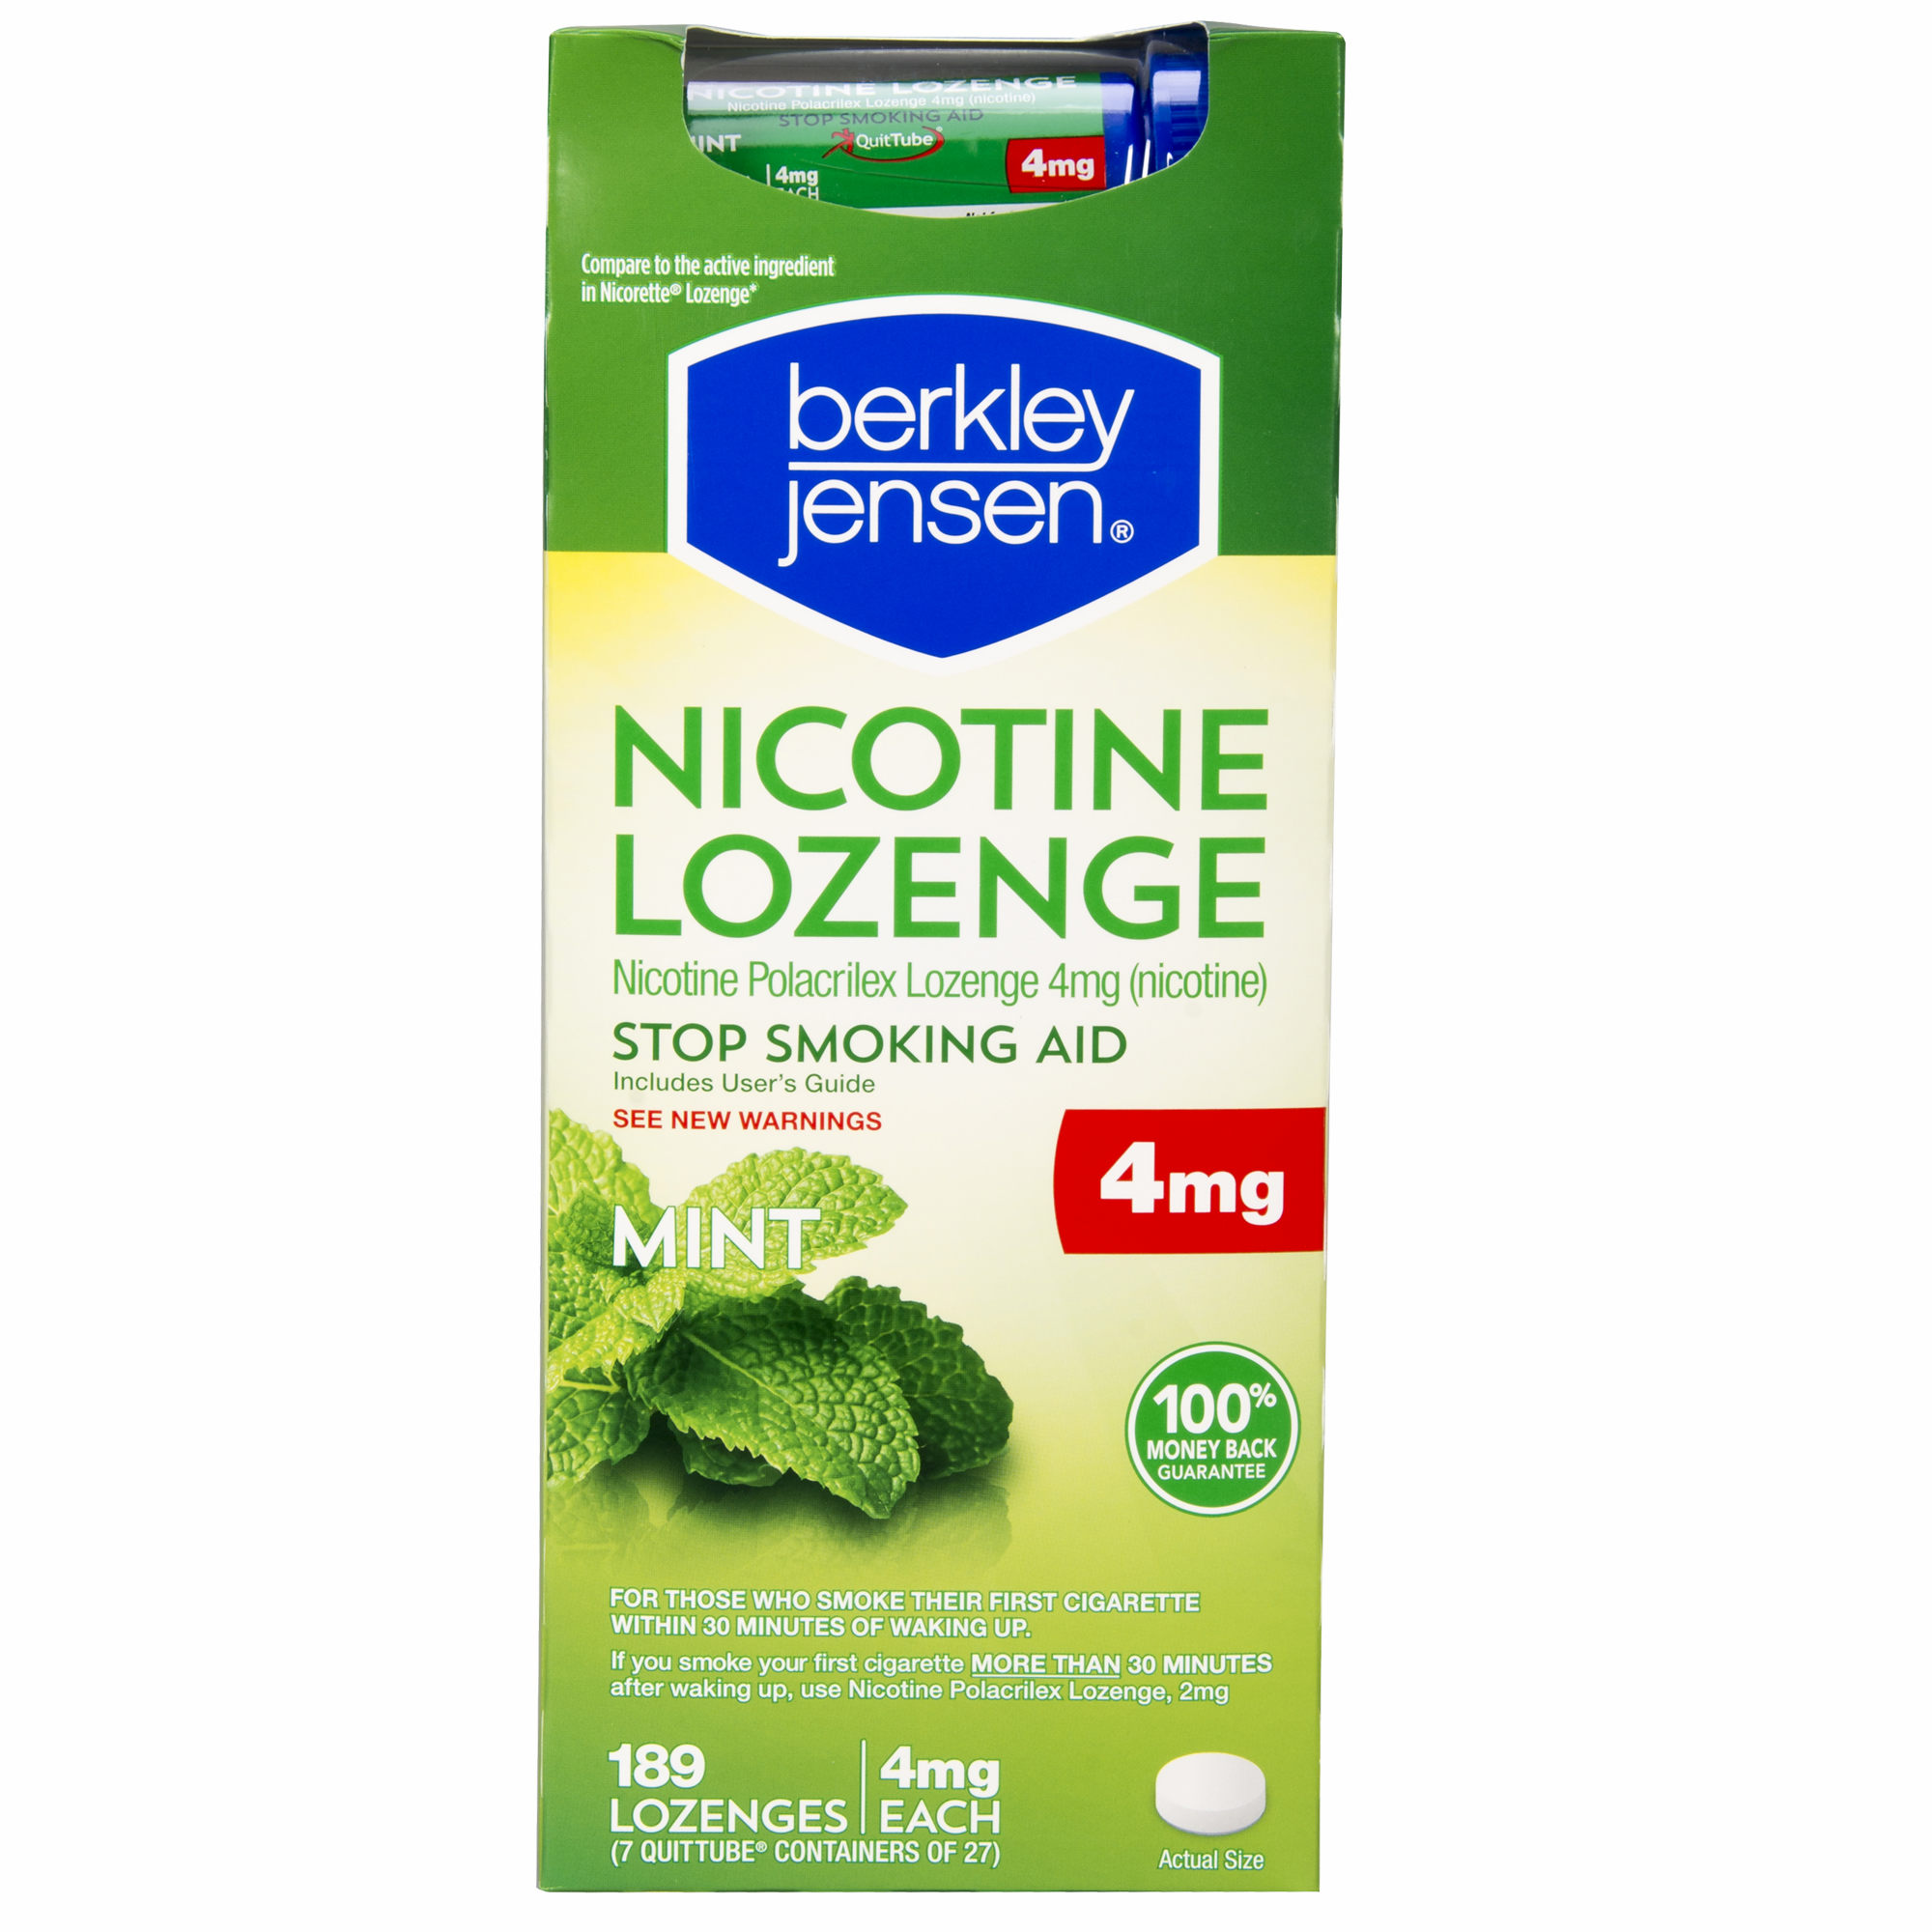 Product of Berkley Jensen Mint Nicotine Lozenge 189 ct./4mg - Stop Smoking [Bulk Savings]